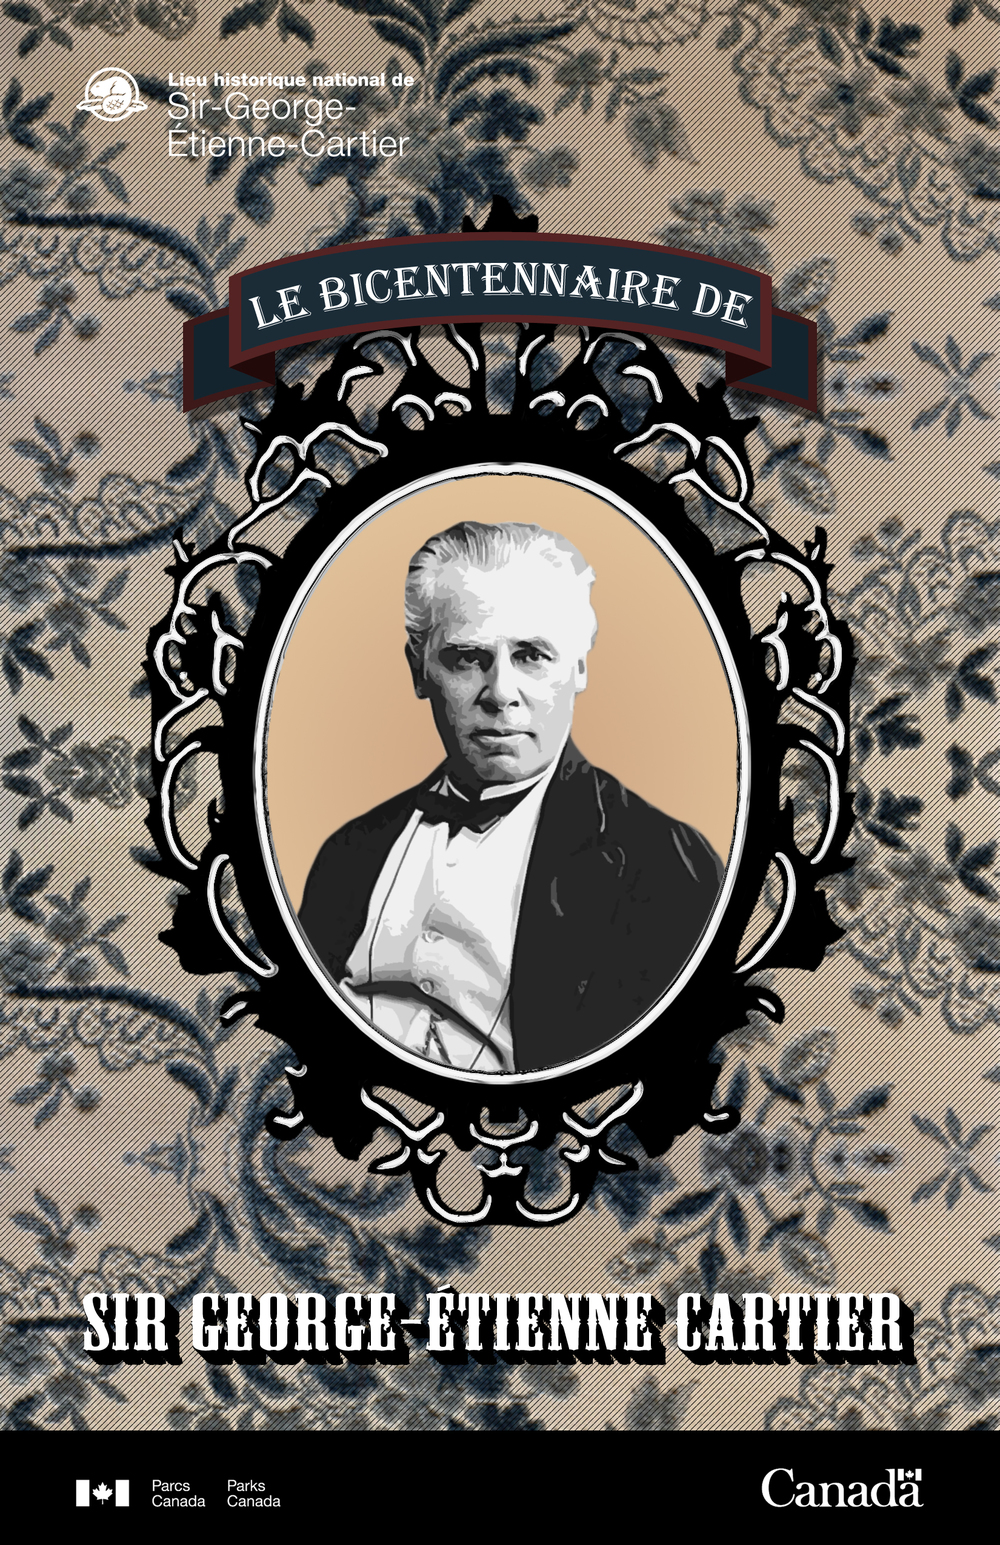 Promotional poster for the 200th anniversary celebrations of the birth of Sir George-Étienne Cartier held at the Sir-George-Étienne-Cartier National Historic Site